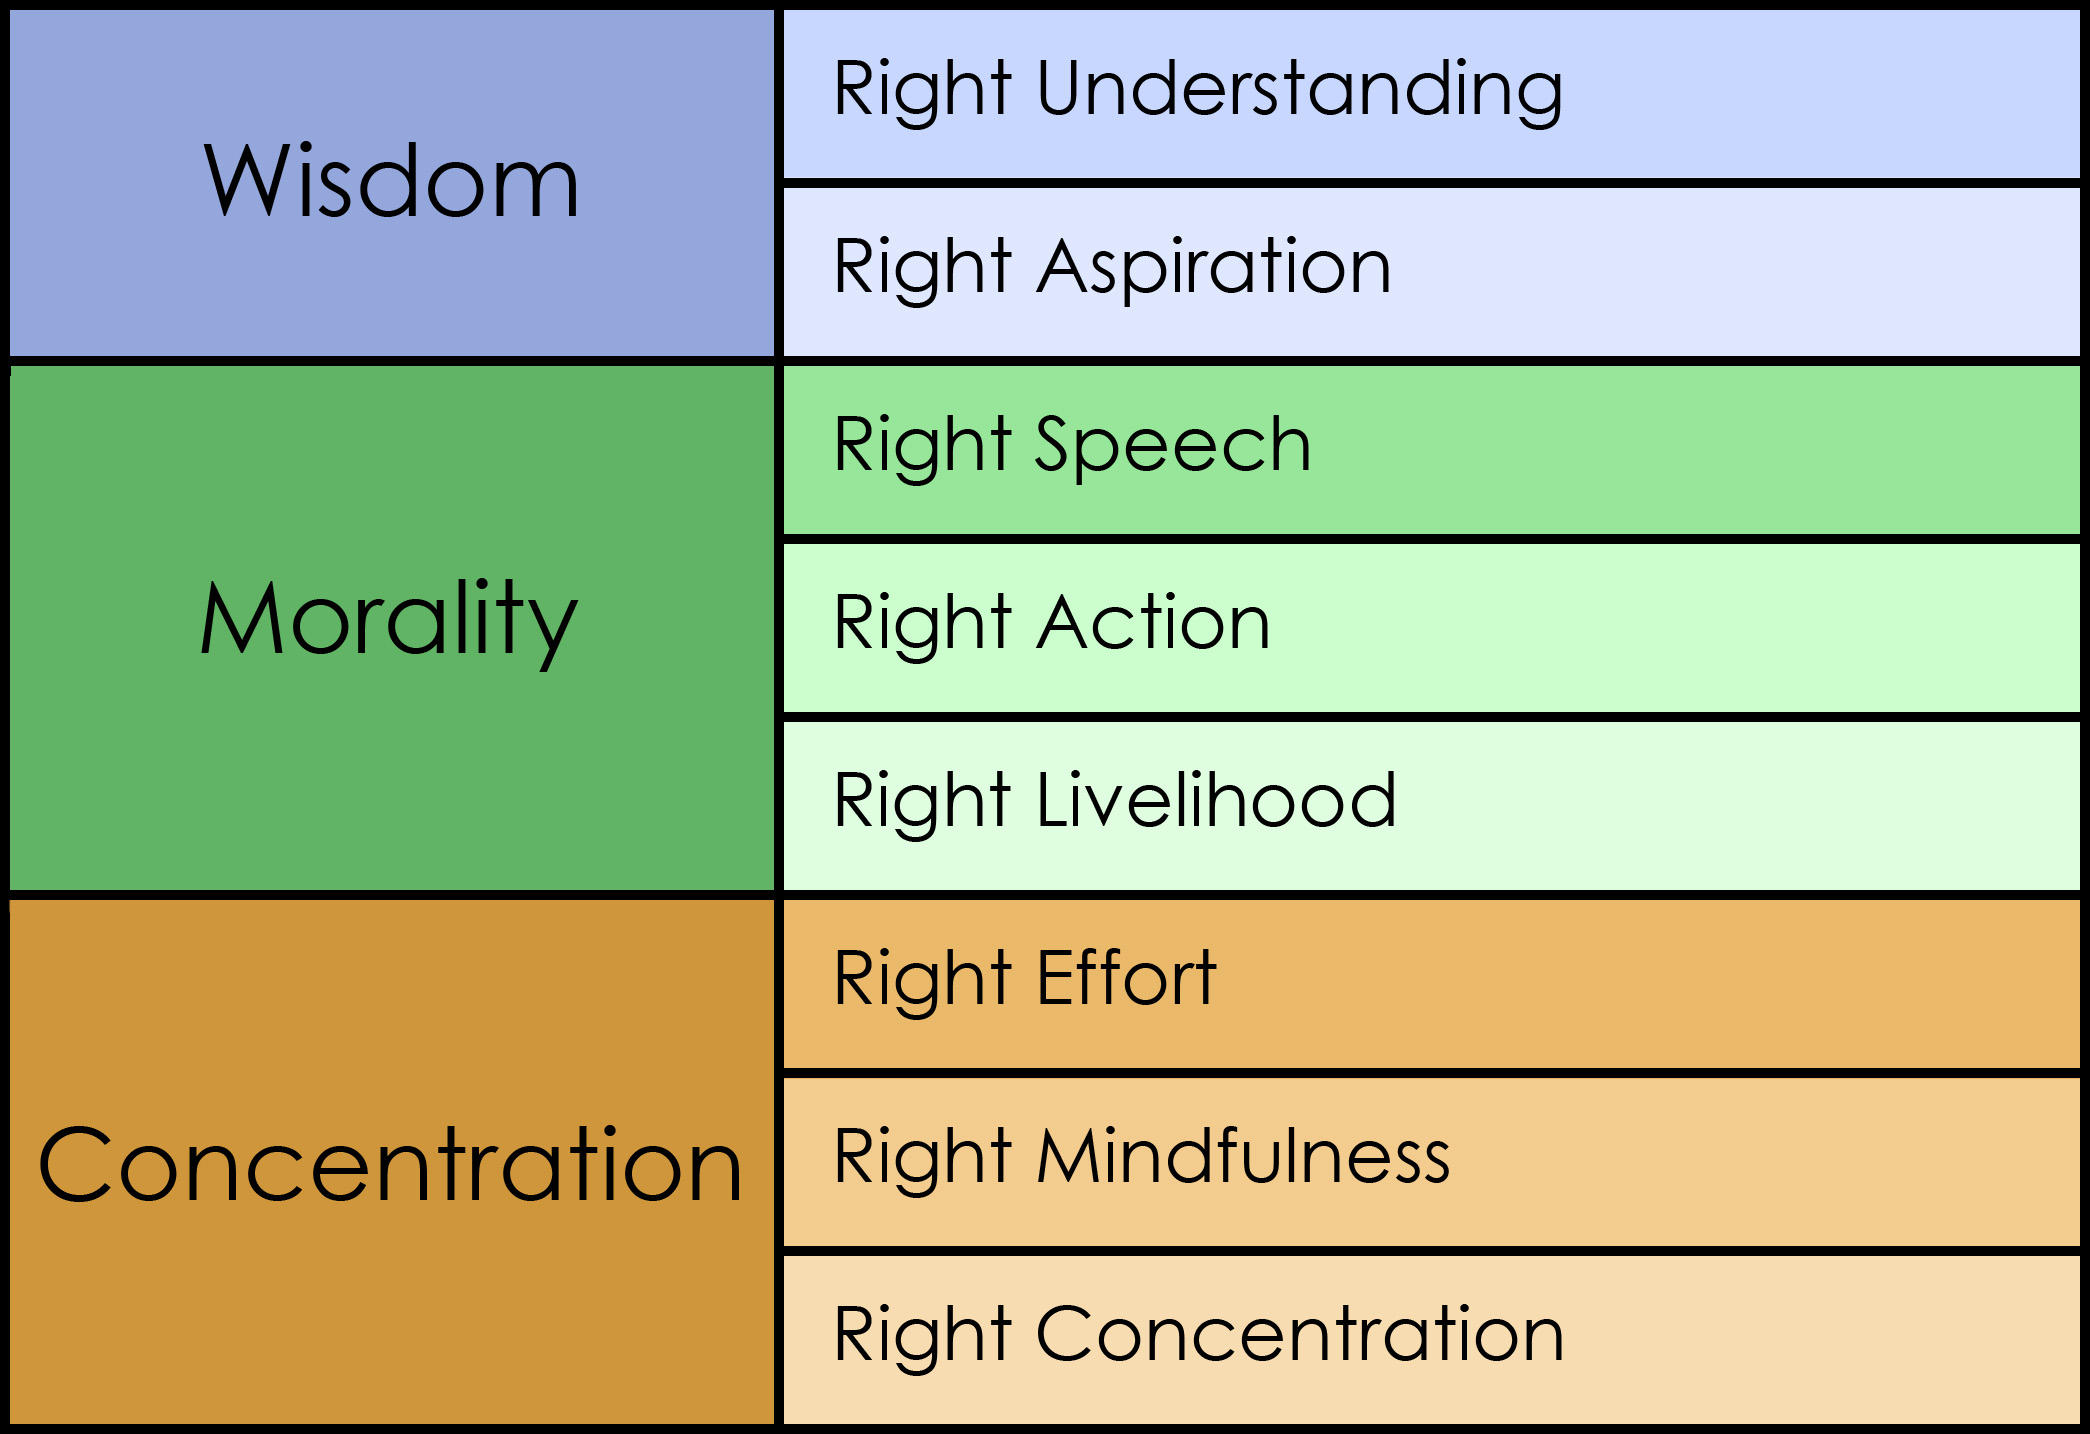 following the eight fold path the idea of suffering in buddhism The goal here is the end of suffering, and the path leading to it is the noble eightfold path with its eight factors: right view, right intention, right speech, right action, right livelihood, right effort, right mindfulness, and right concentration.